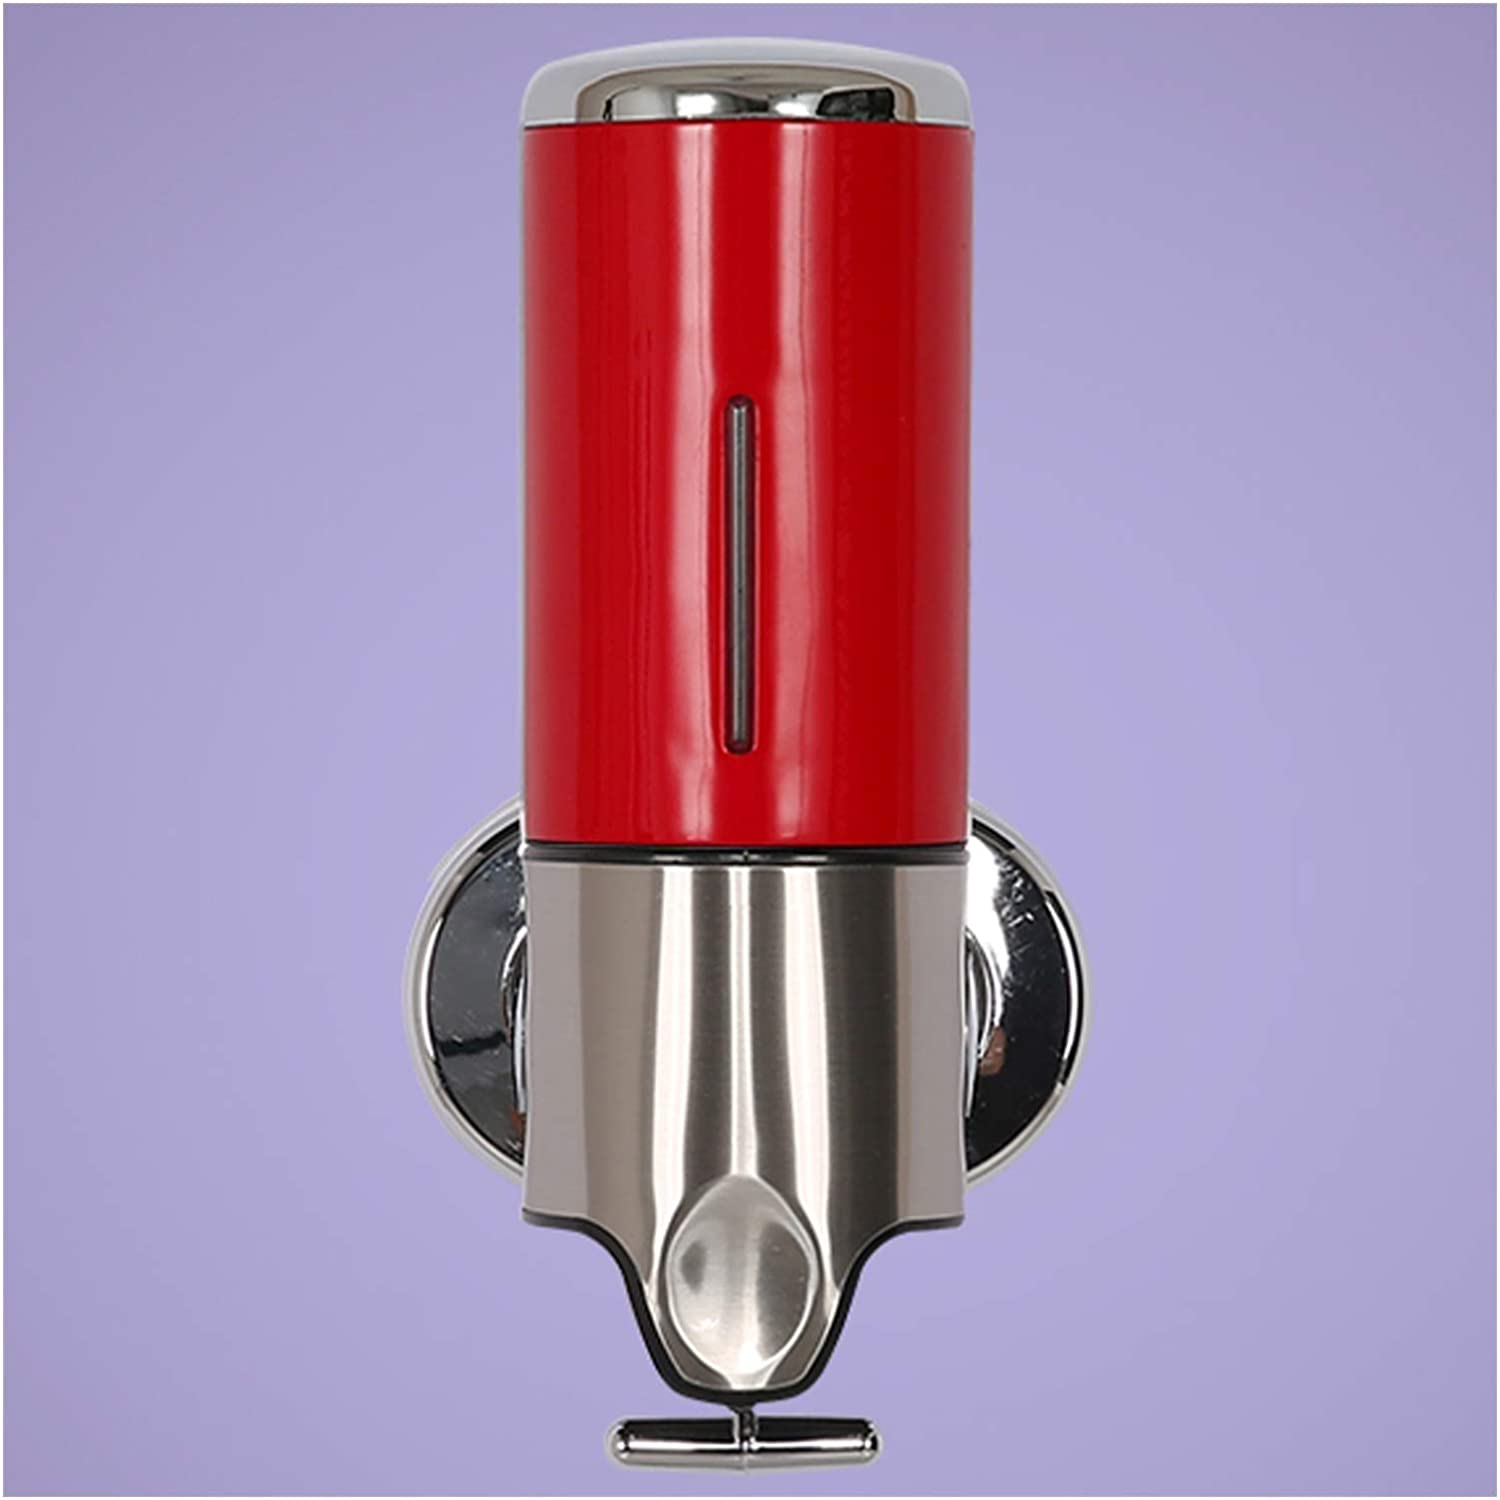 YI0877CHANG Soap Dispenser favorite Trust Dispense Commercial Wall-Mounted